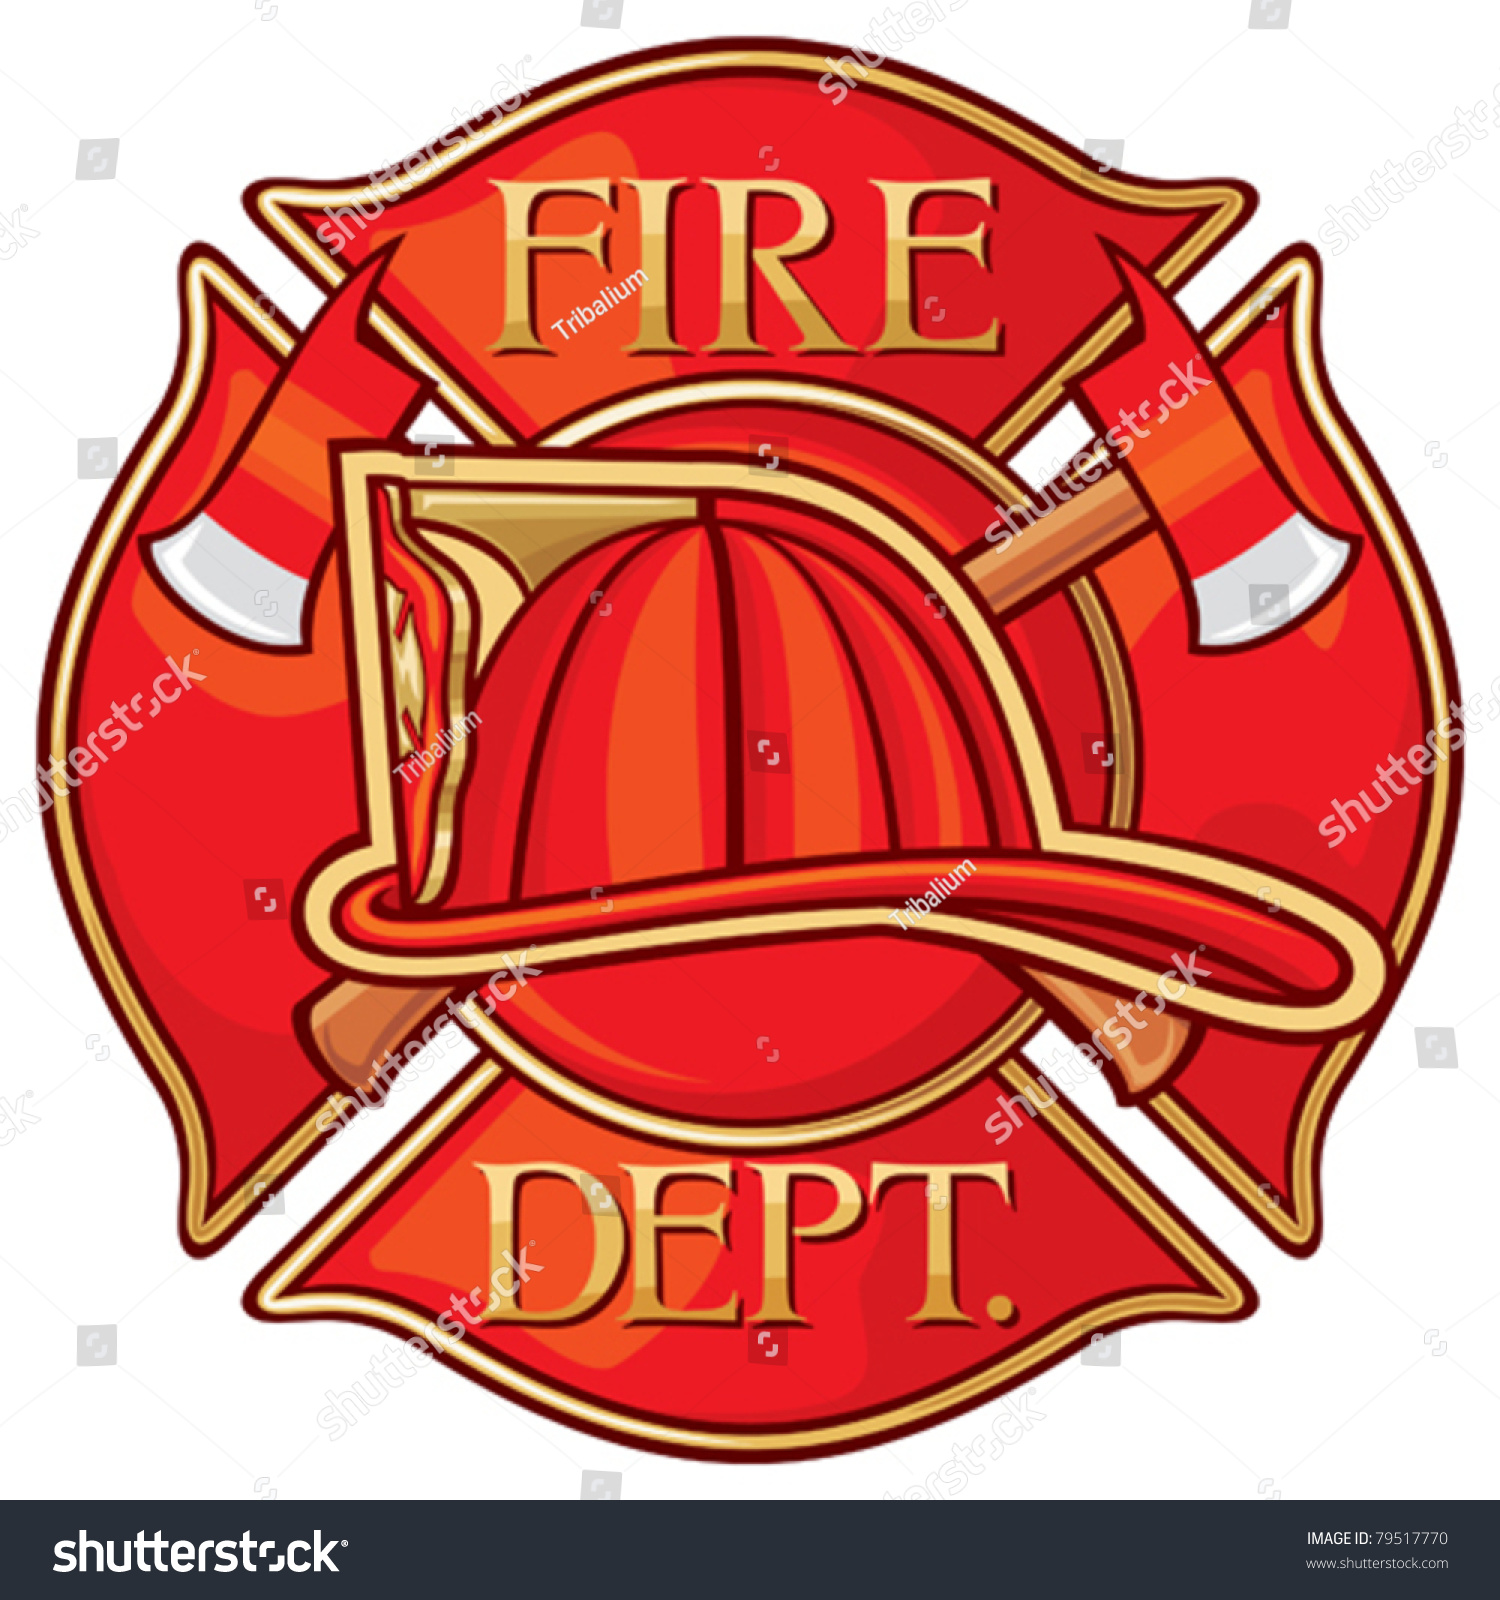 Fire Department Firefighters Maltese Cross Symbol Stock Vector ...